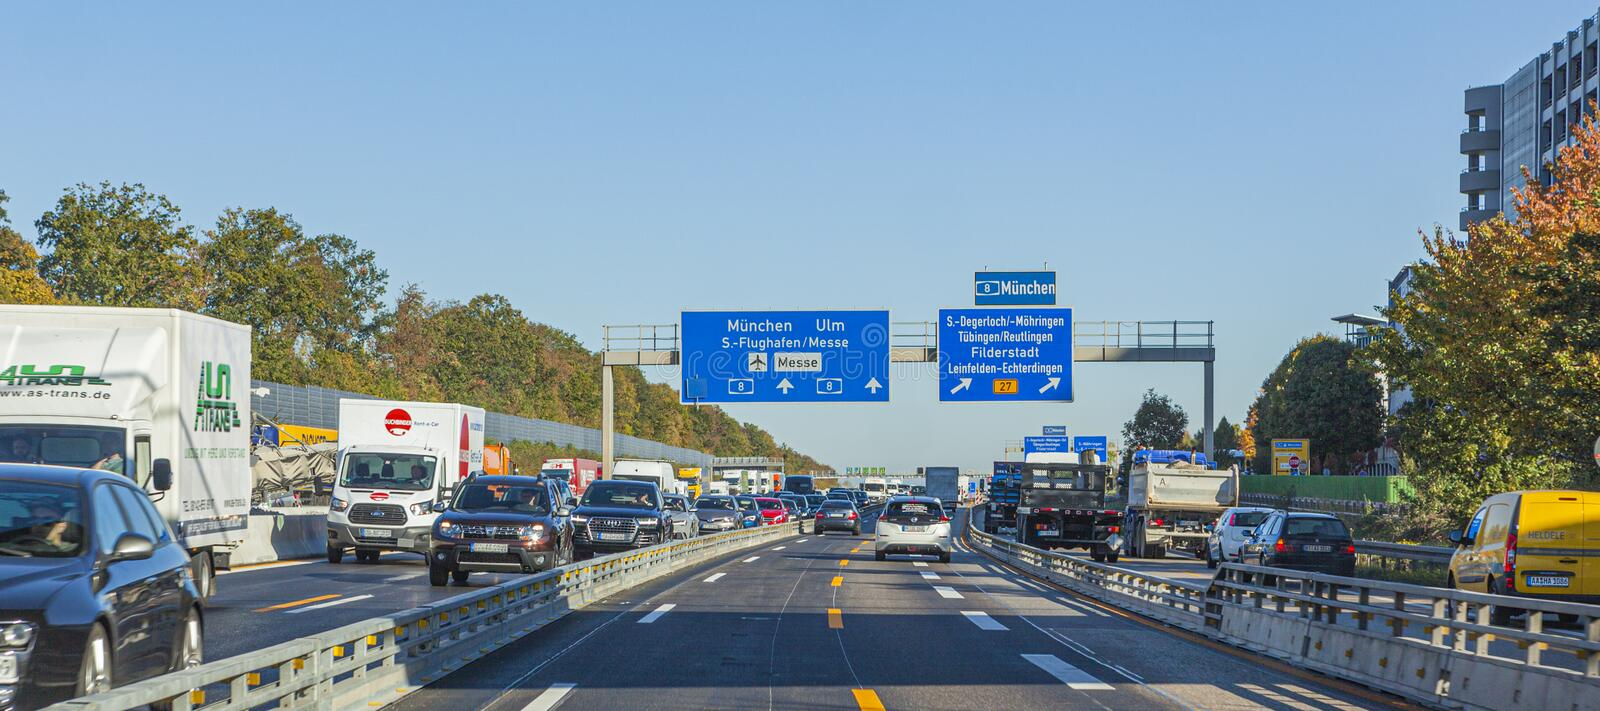 Traffic Jam on German Autobahn causes air pollution royalty free stock photography